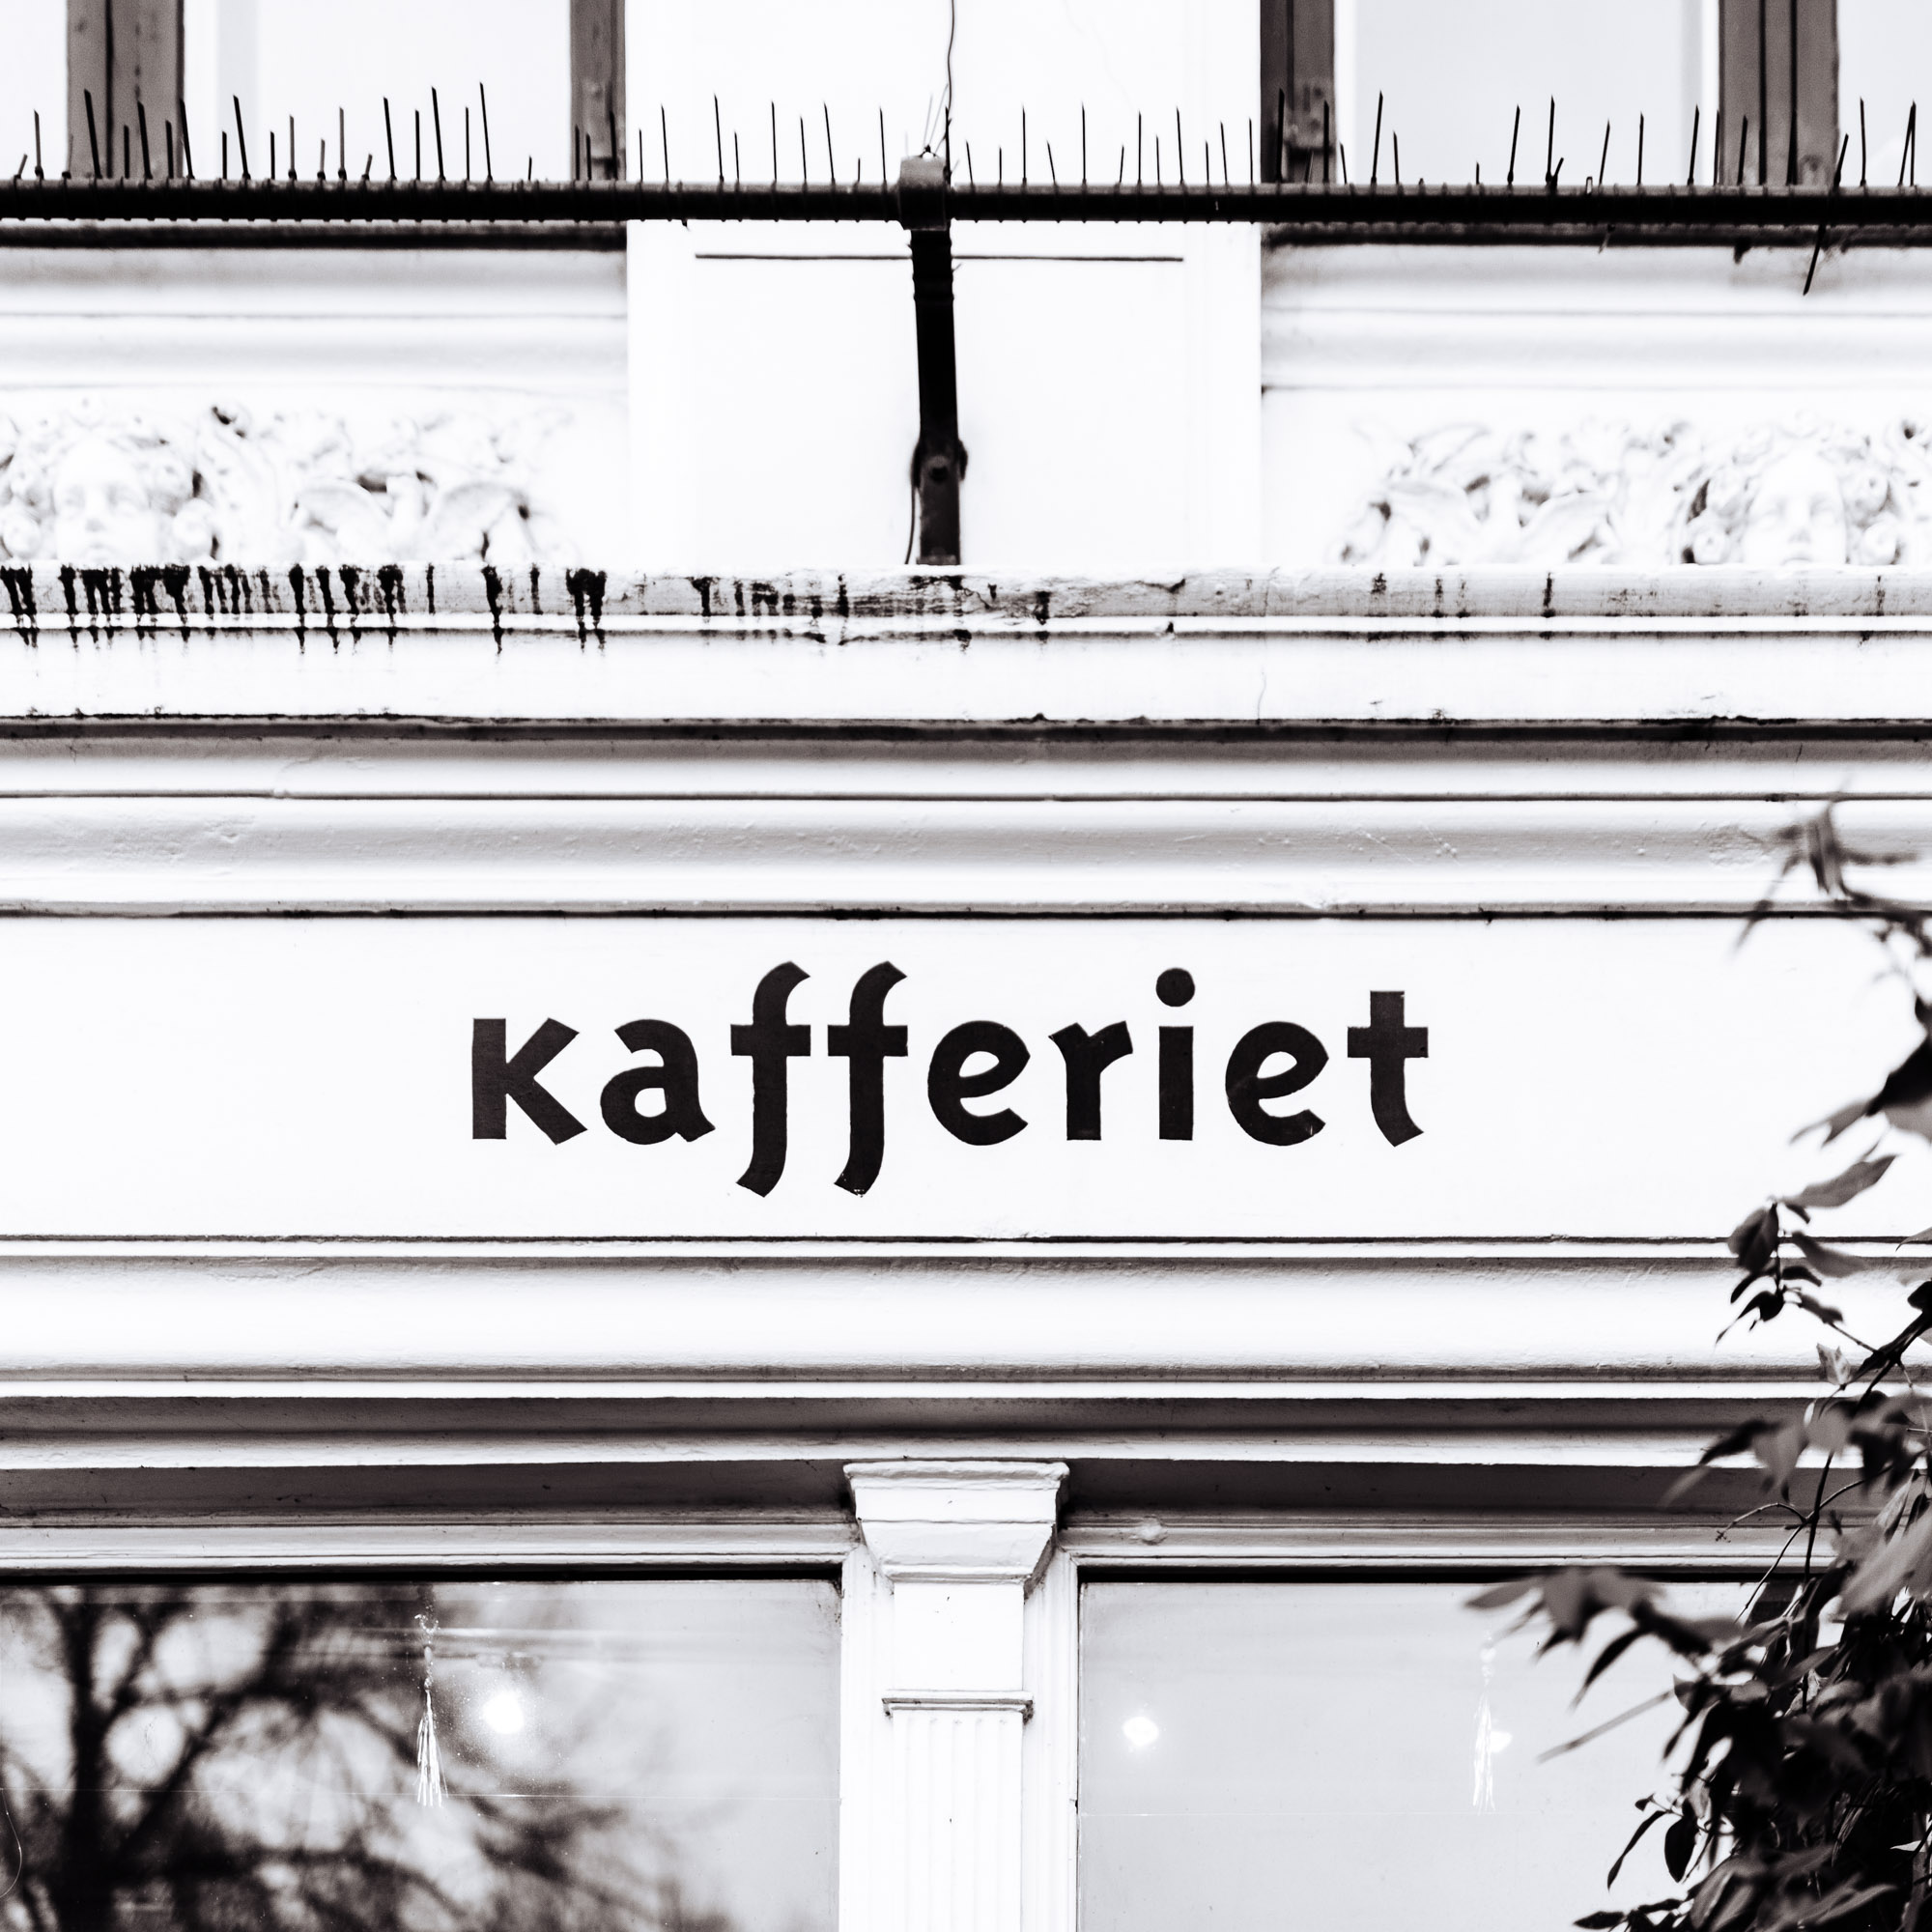 Jeff On The Road - Copenhagen - Coffee - Kafferiet - All photos are under Copyright © 2017 Jeff Frenette Photography / dezjeff. To use the photos, please contact me at dezjeff@me.com.